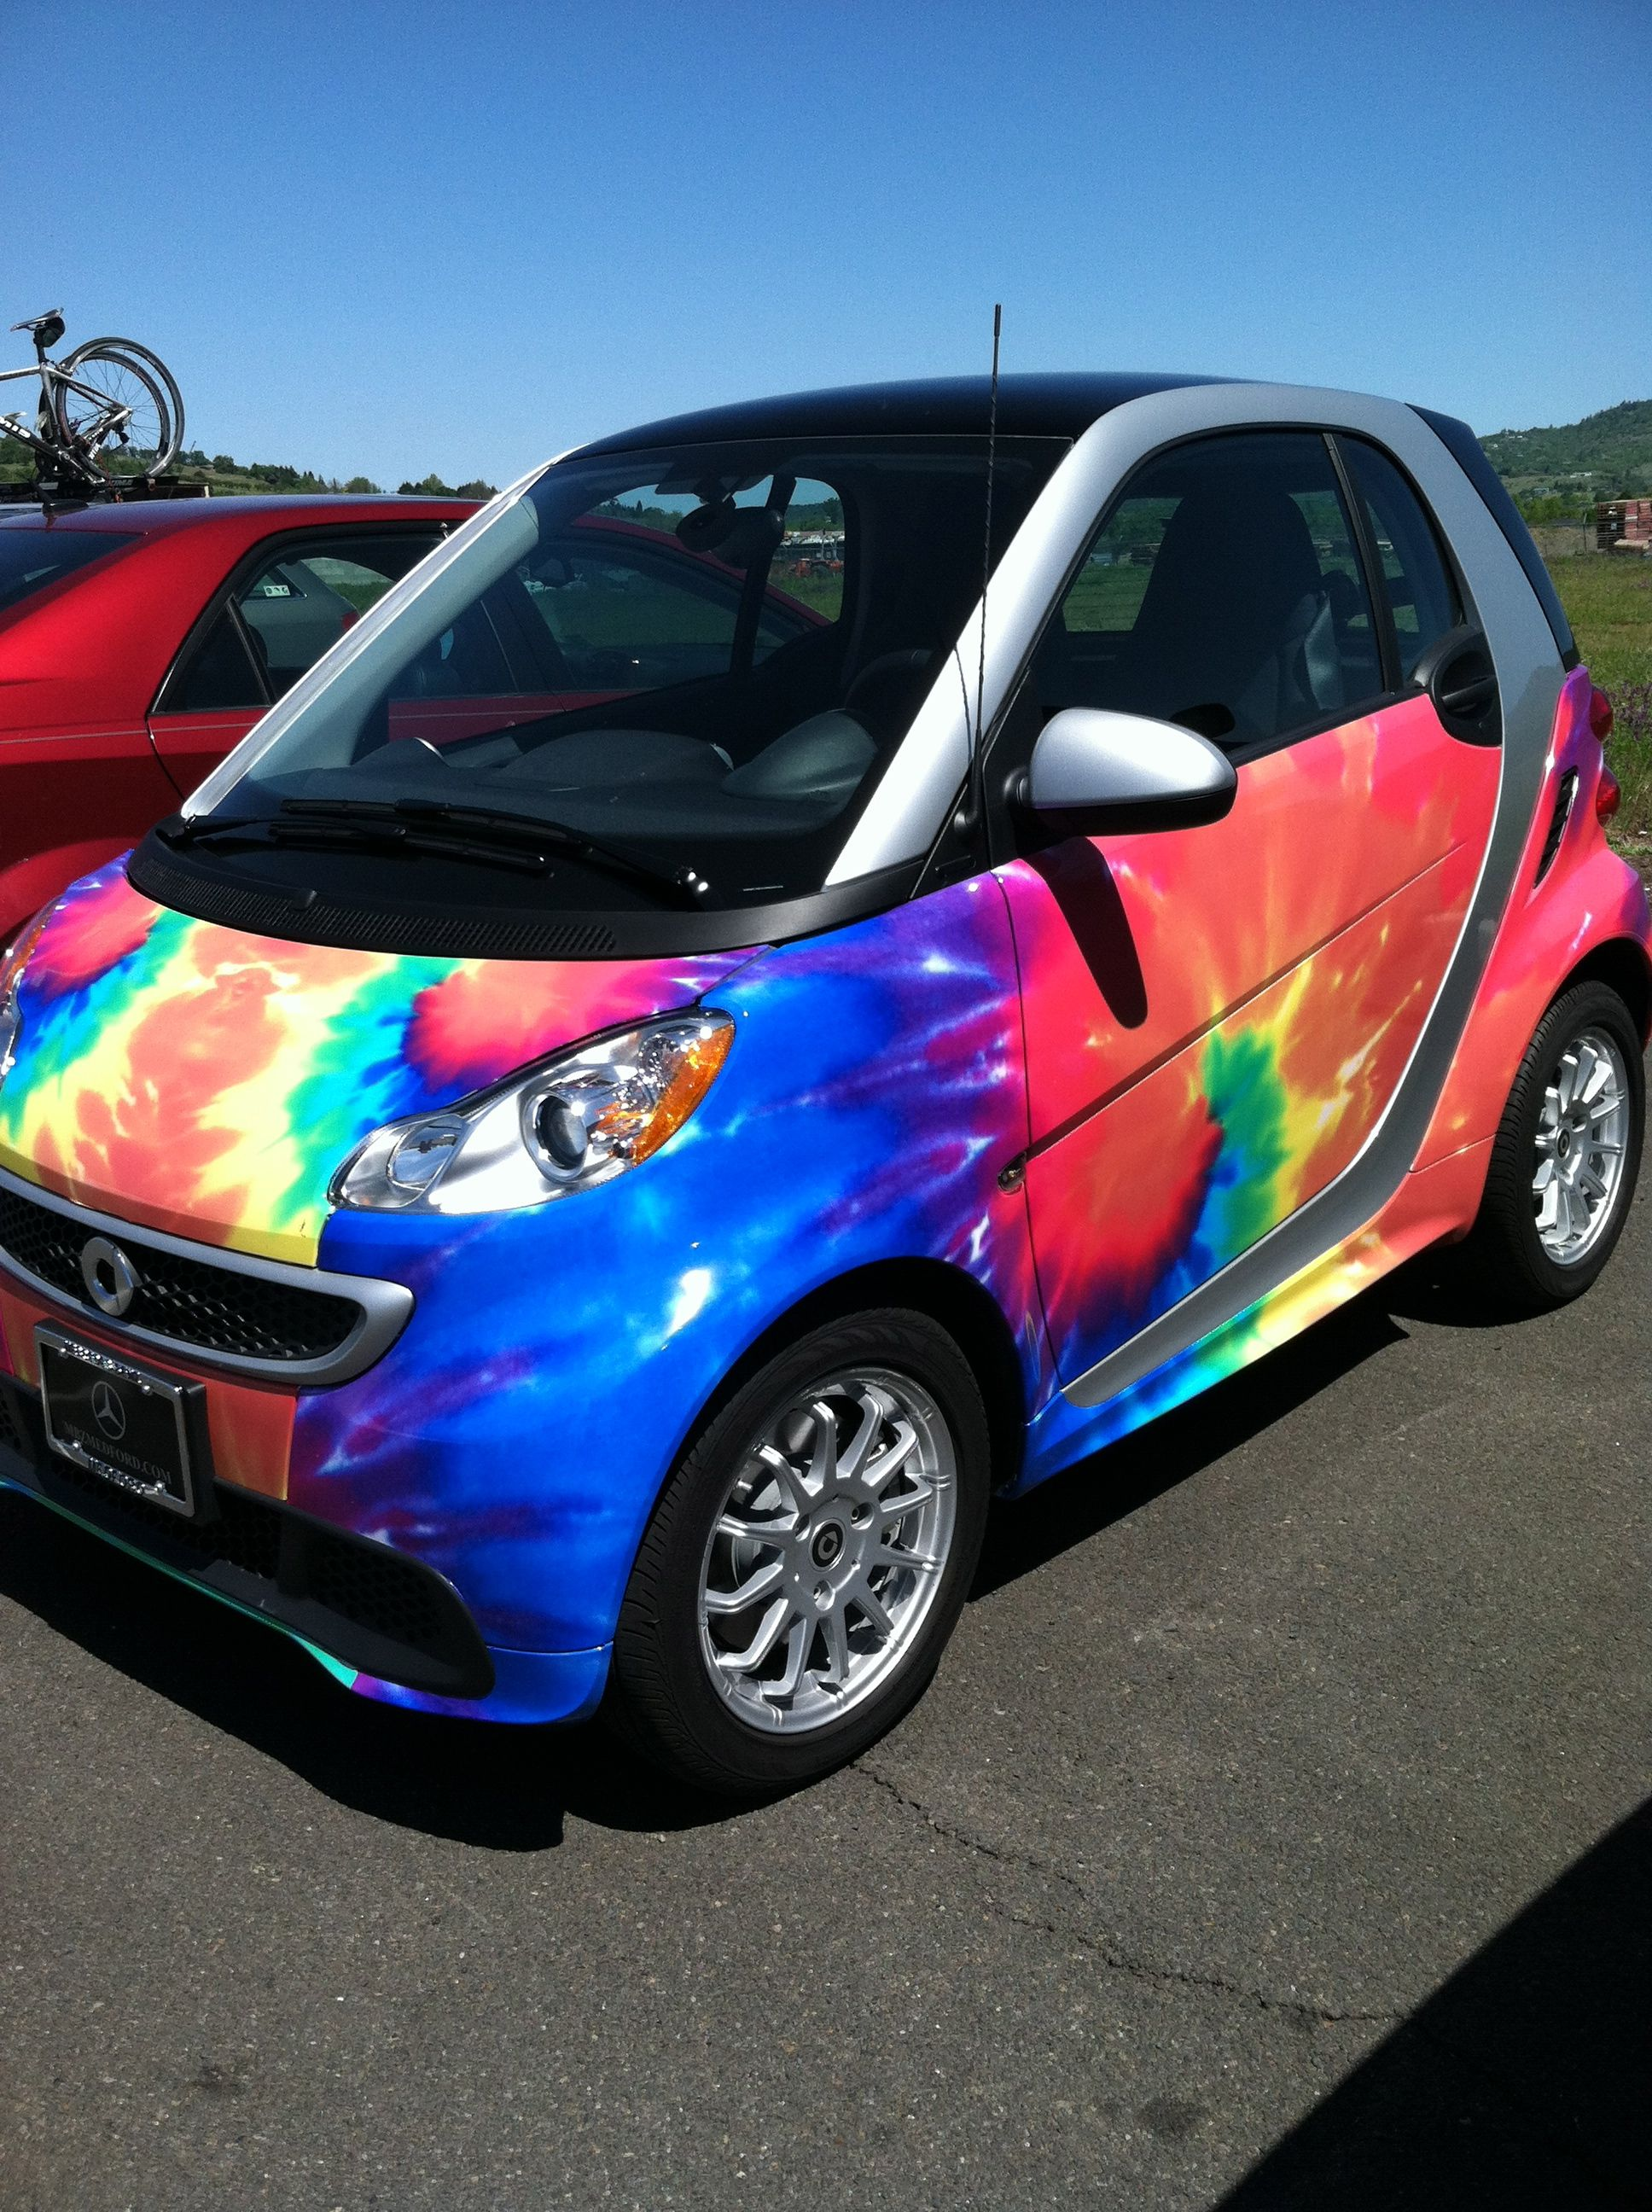 Smart car sticker designs - The Dealers Smart Car